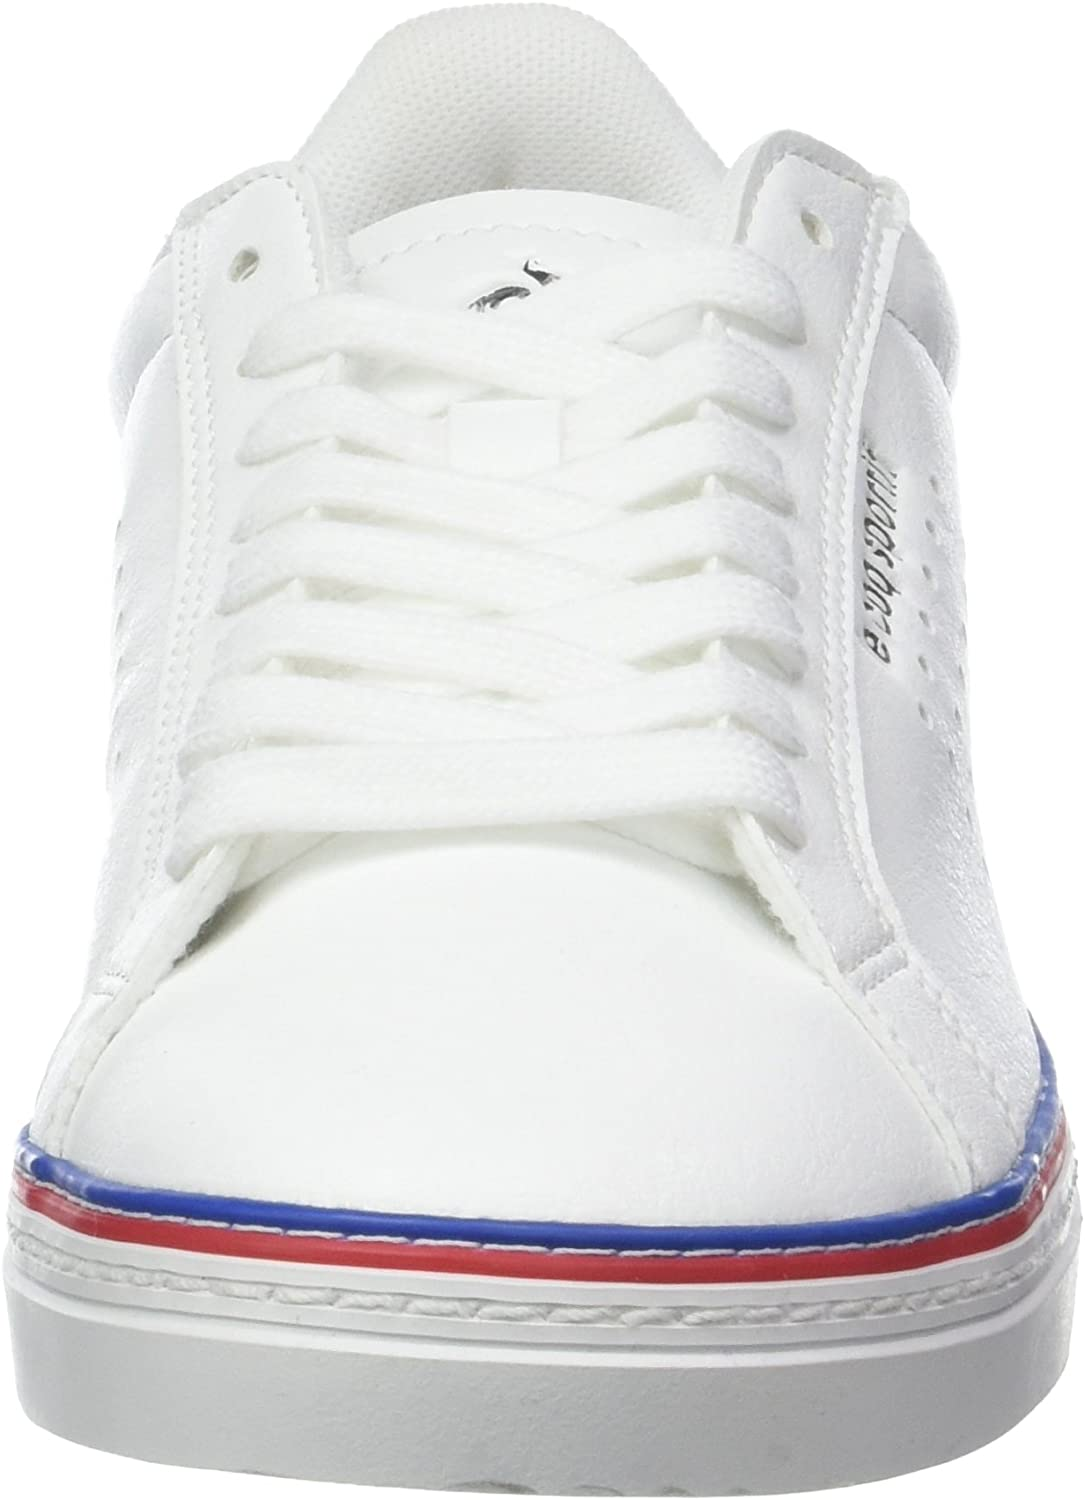 le coq Sportif Women's Low-Top Trainers White Optical White Blanc